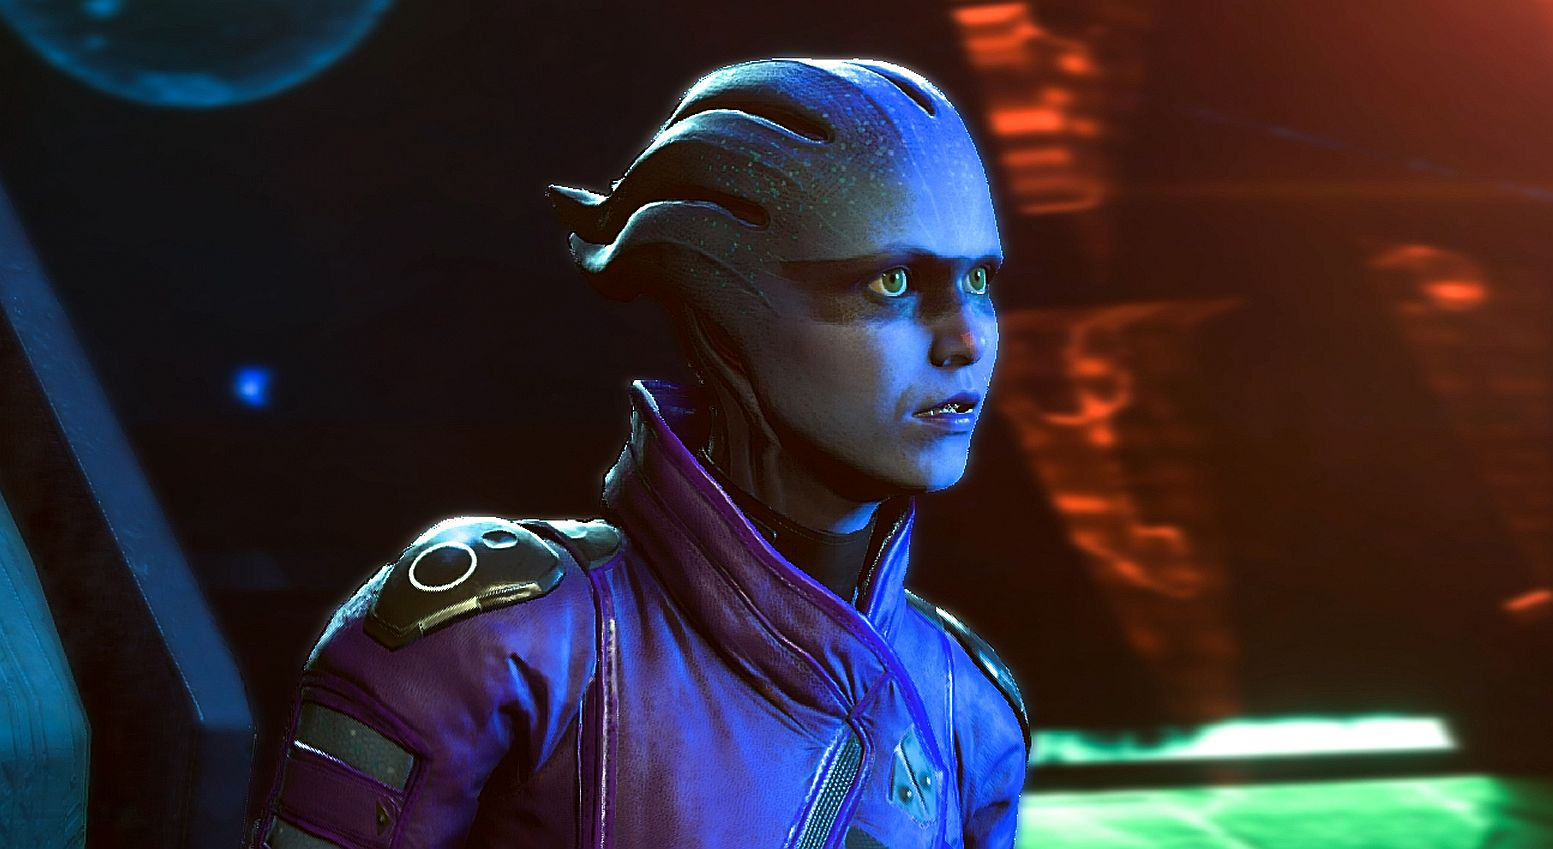 Mass Effect Andromeda S Release Date Has Been Set For